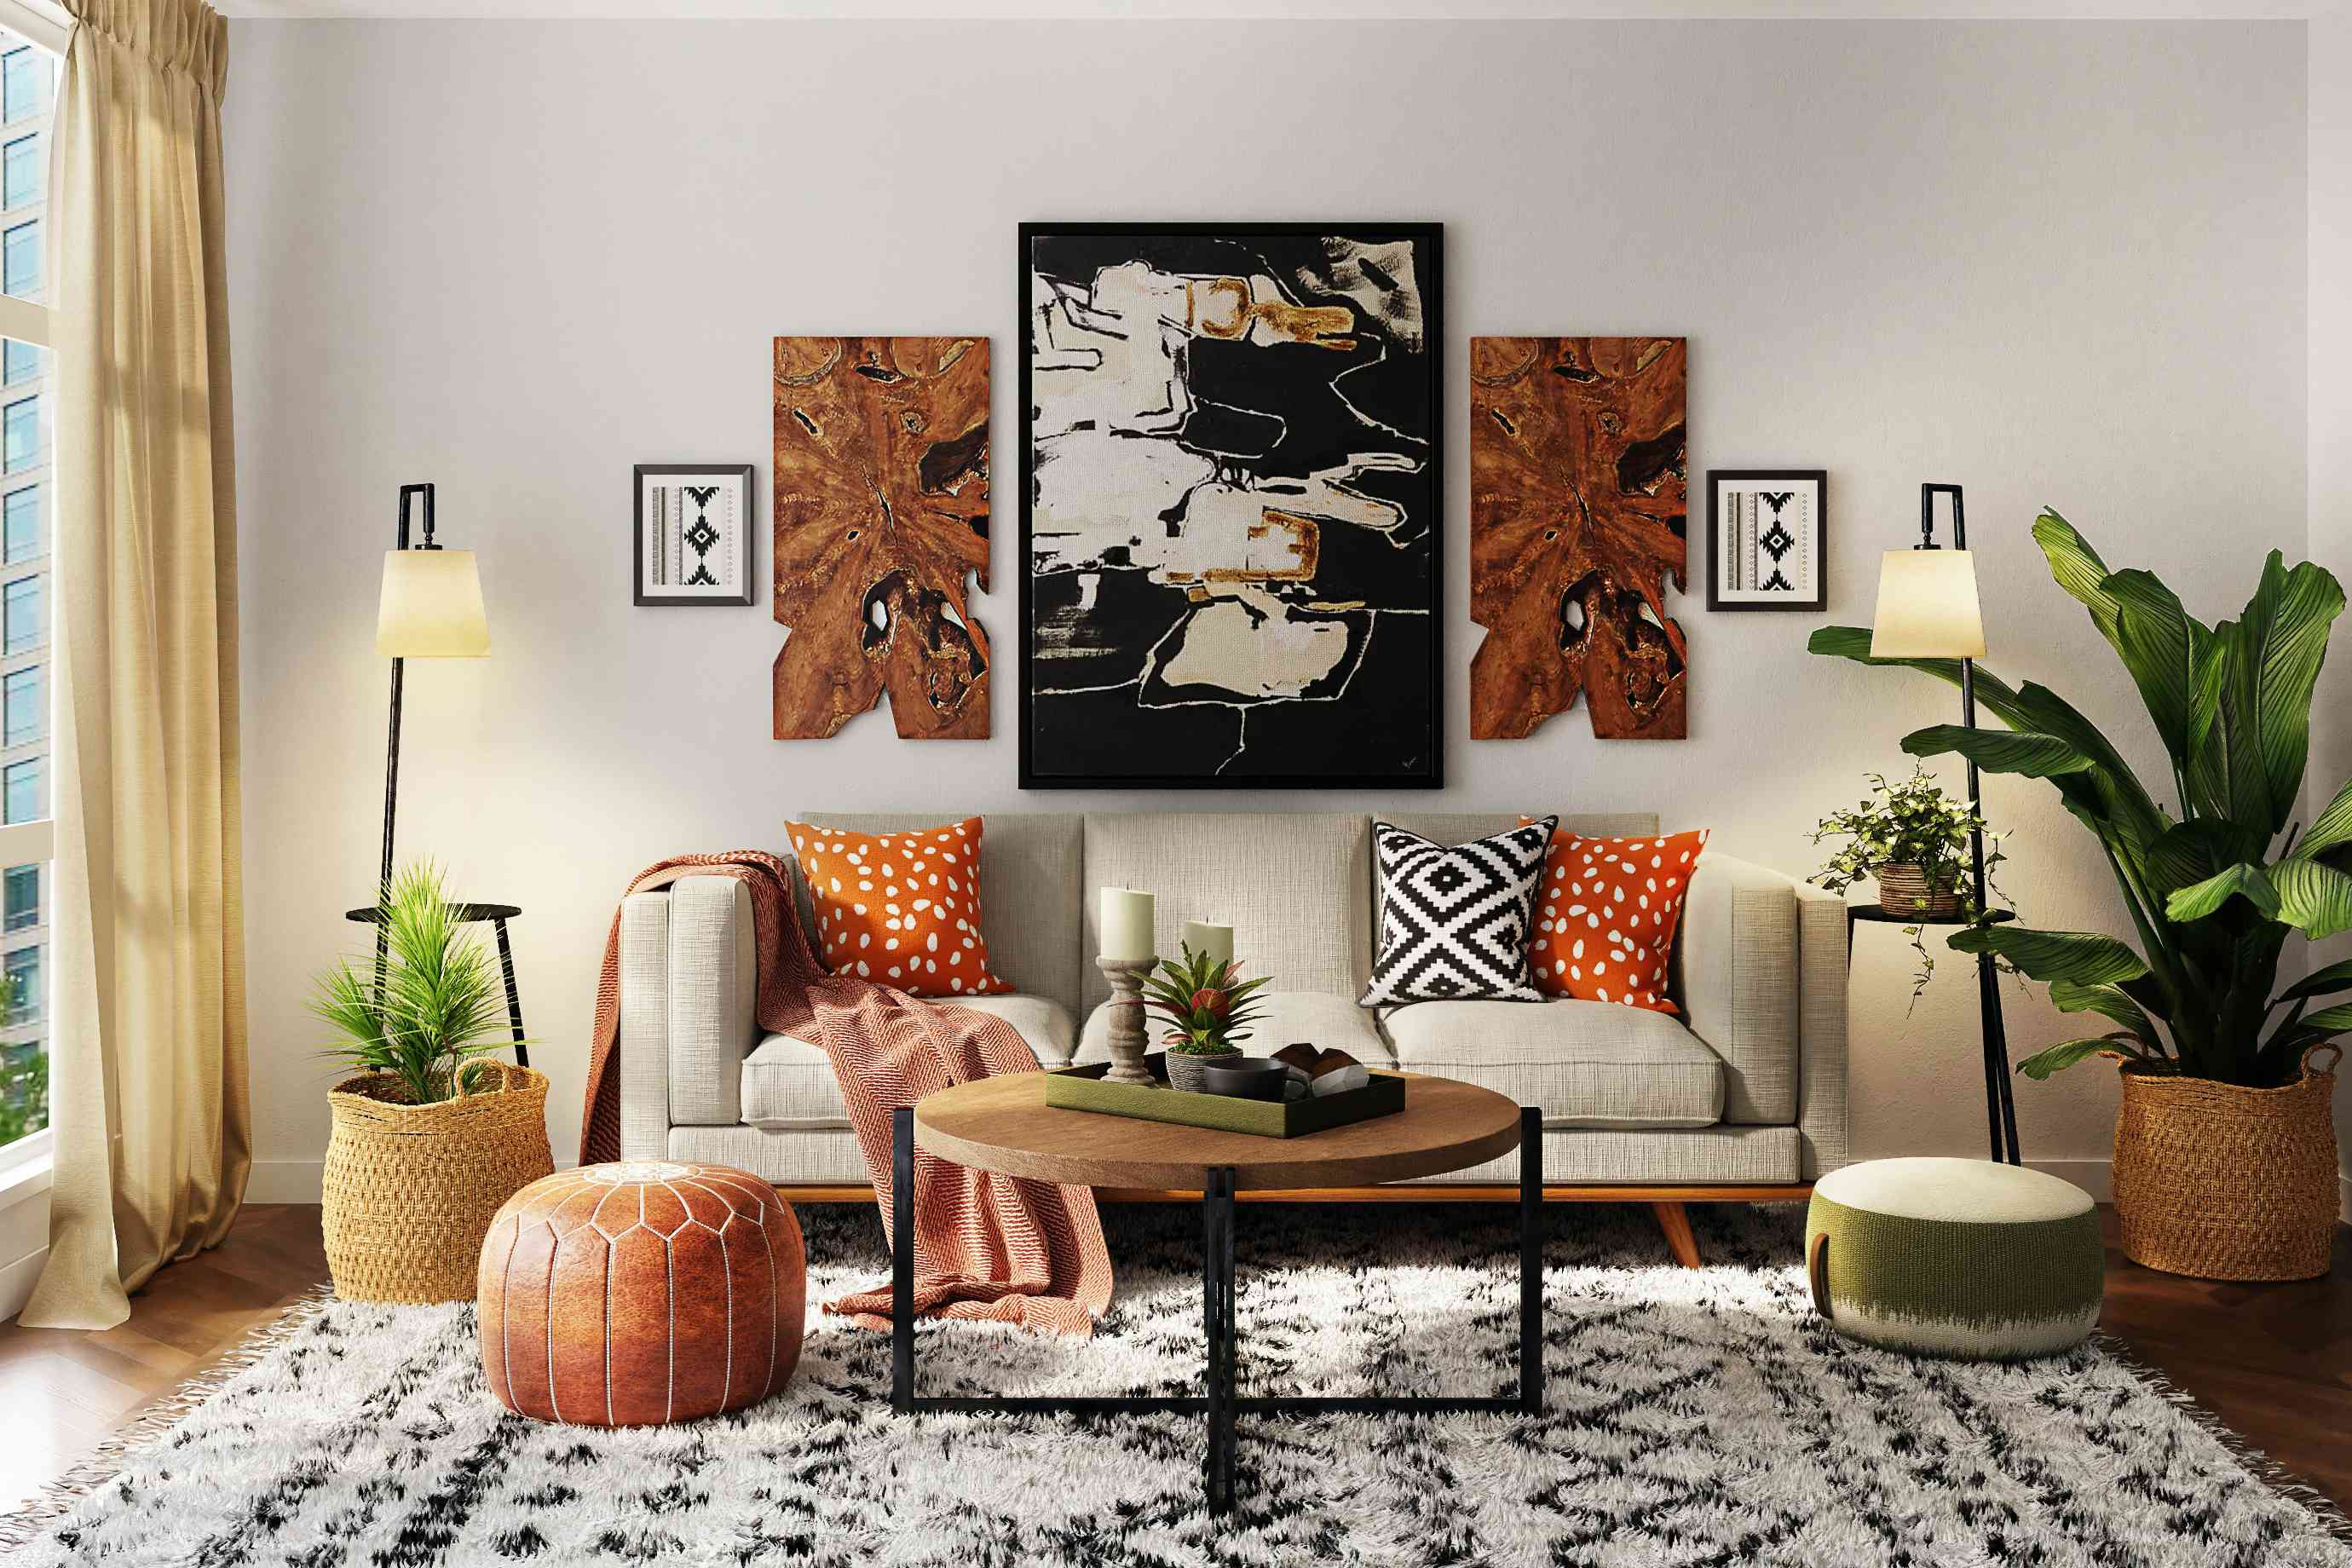 Interior with mixed patterns and textures